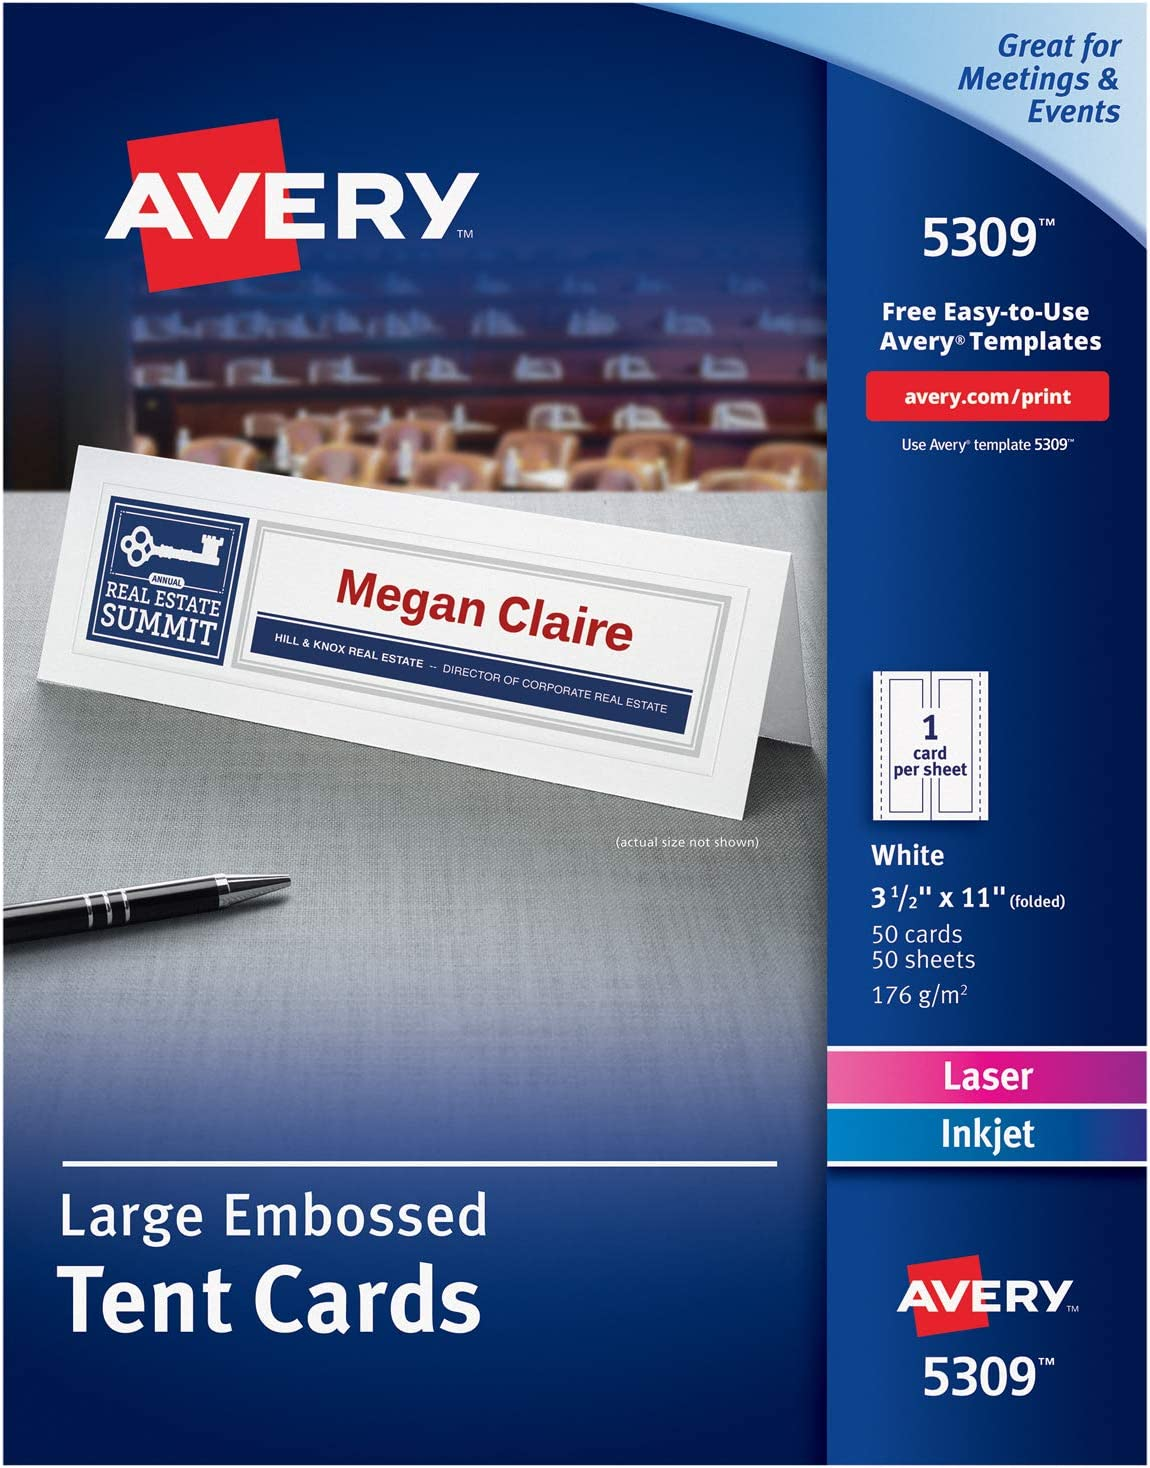 Avery Printable Large Tent Cards Laser Inkjet Printers 50 Cards 3 5 X 11 5309 White